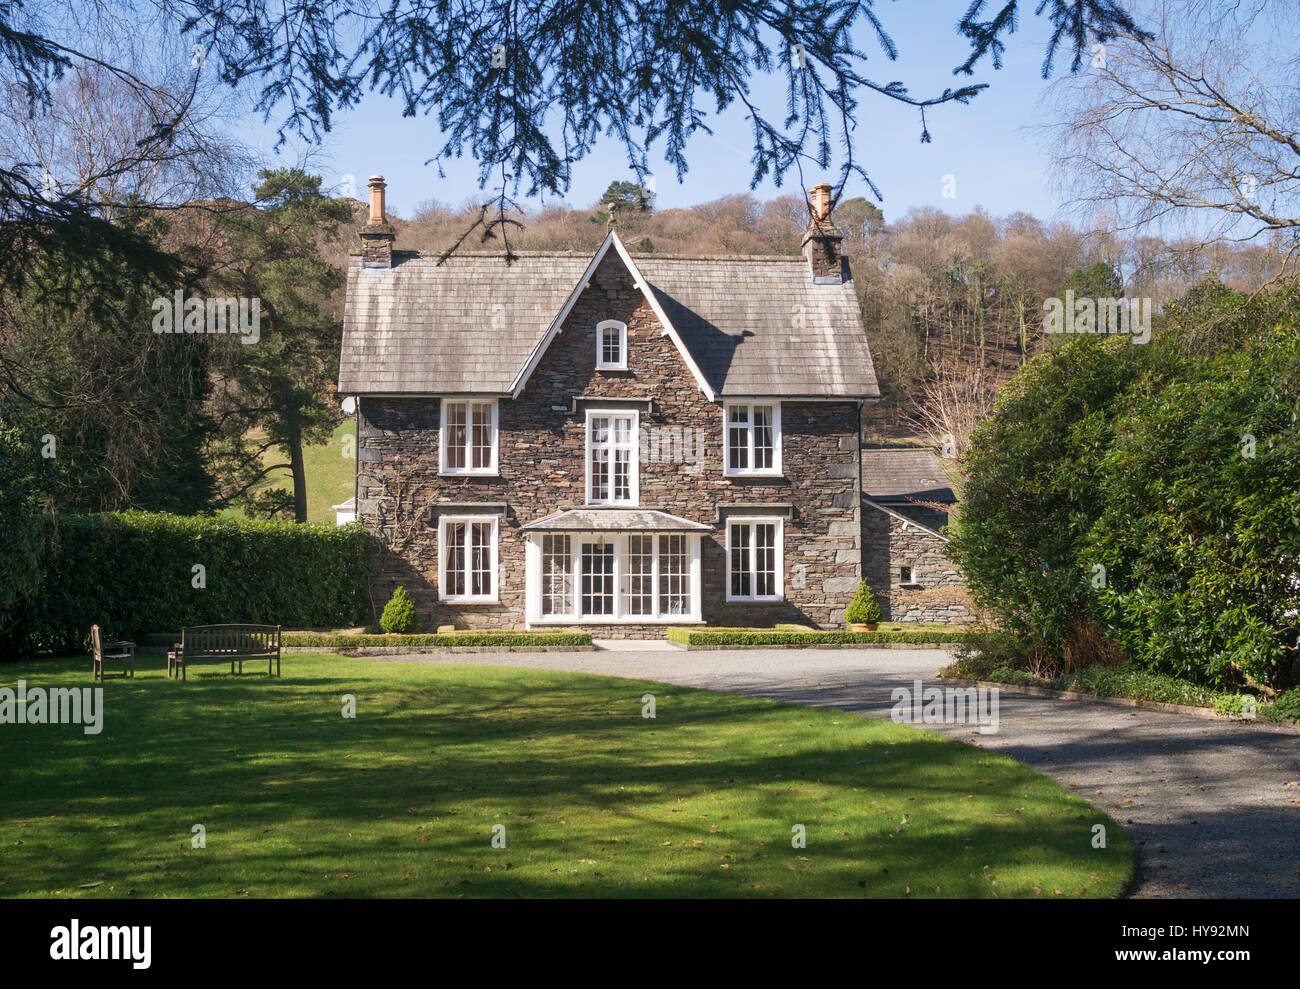 Detached lakeland stone double fronted house seen from the Coffin Route near to Grasmere, Cumbria, England, UK Stock Photo